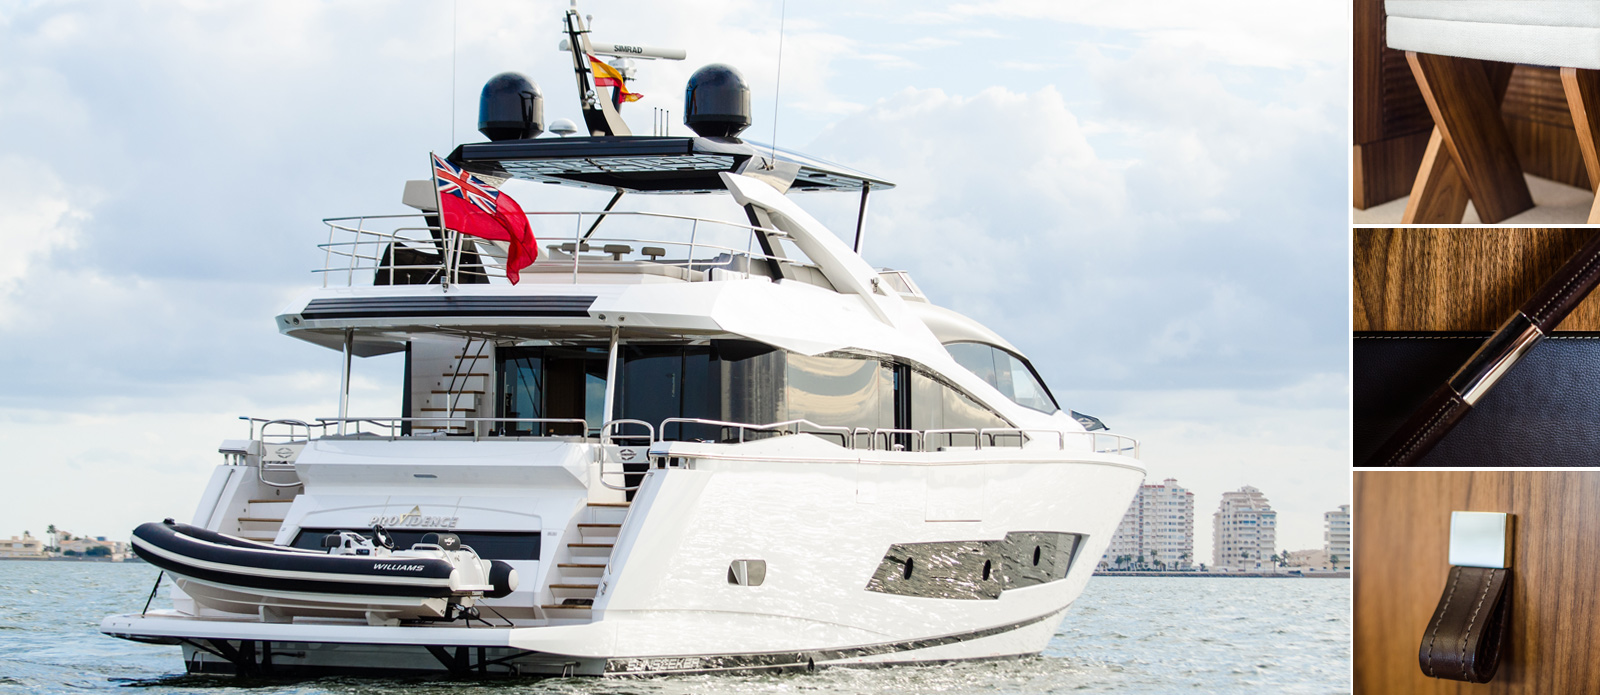 Sunseeker 86 Yacht - Exterior-Collage-2